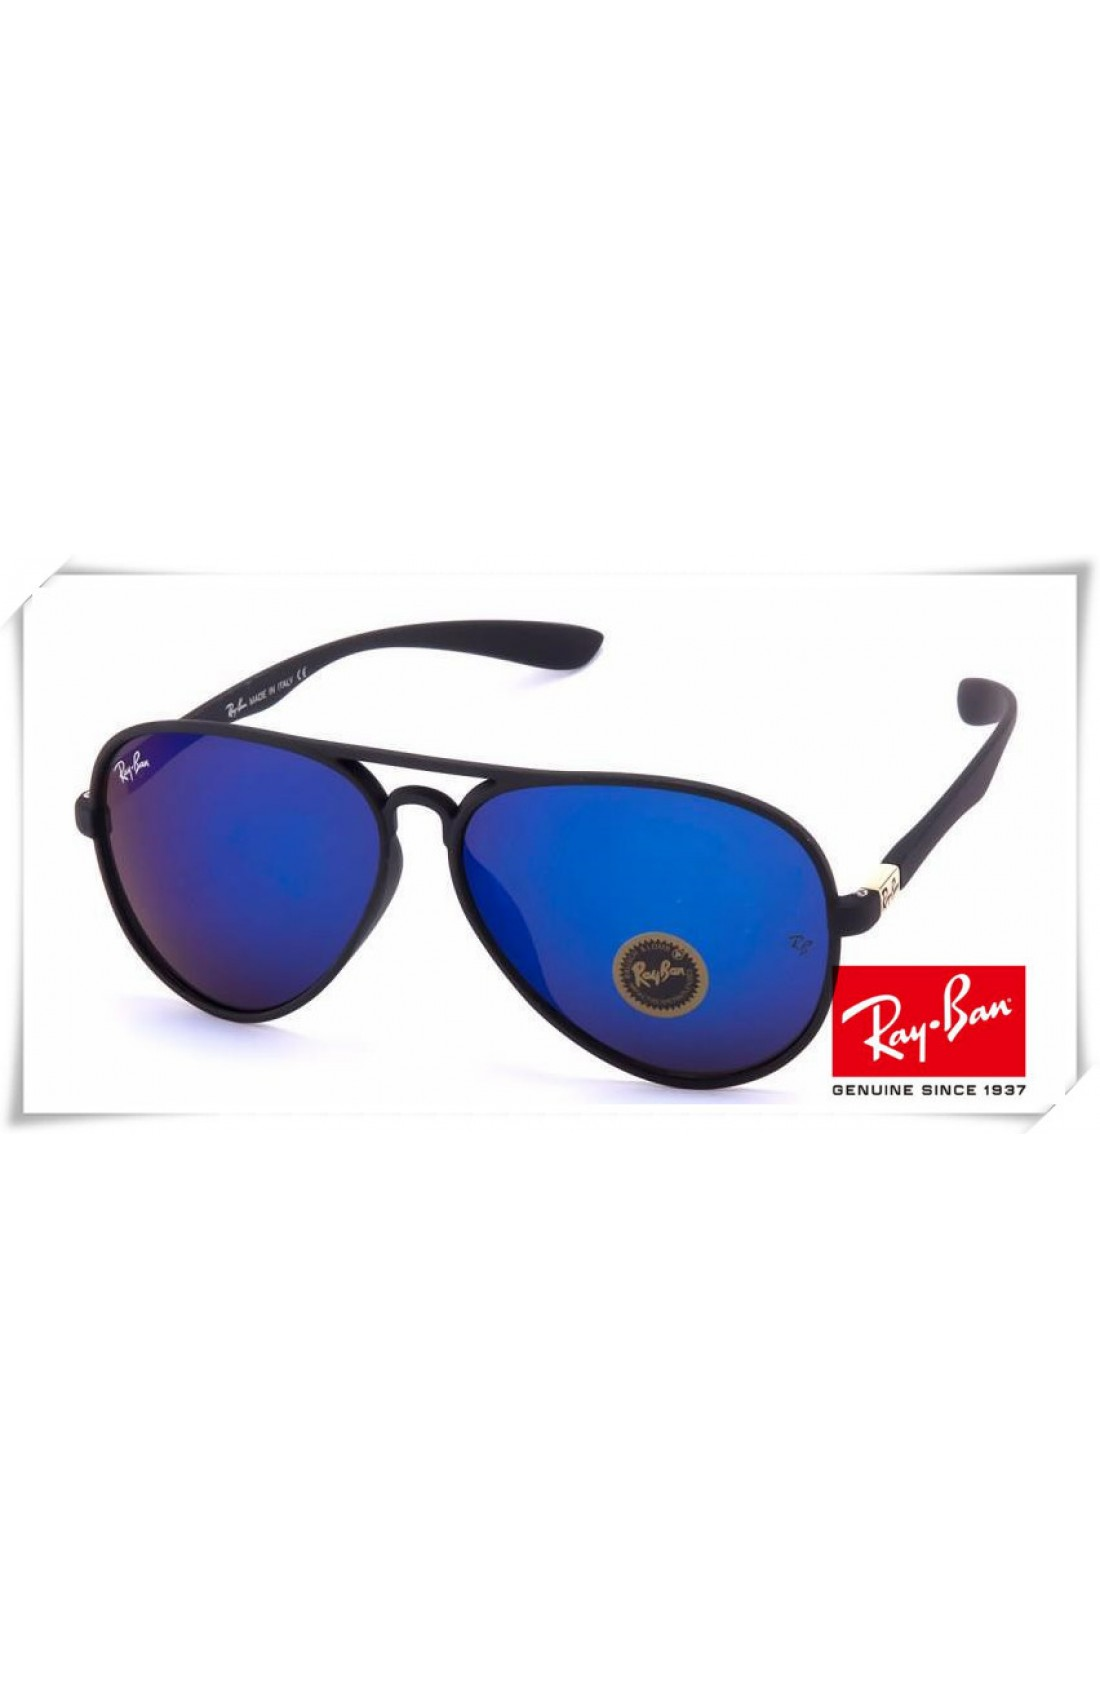 Fake Ray Ban RB4180 Aviator Sunglasses Black Frame Blue Mirror Lens ...